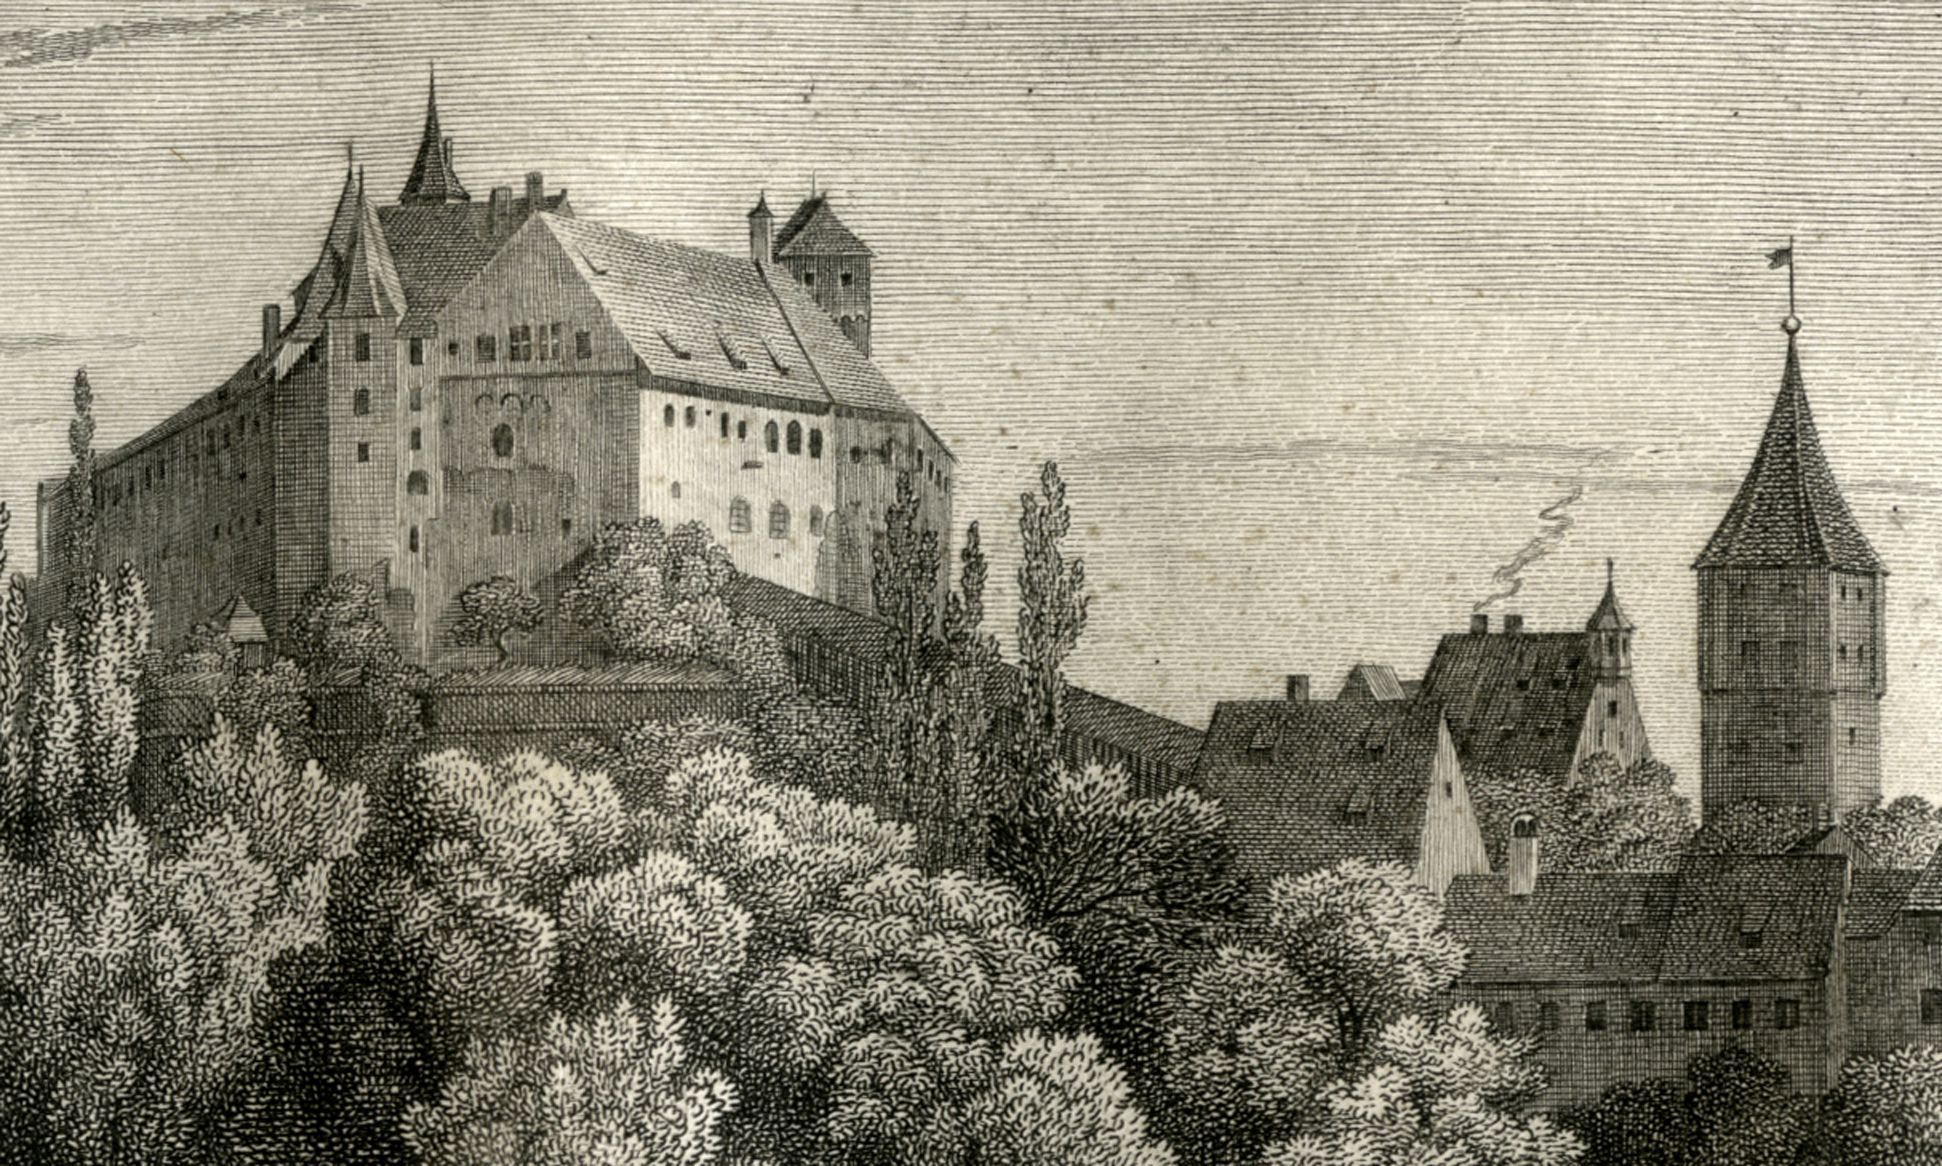 View of the Nuremberg Castle Castle, Pilatus house, Tiergärtnertorturm